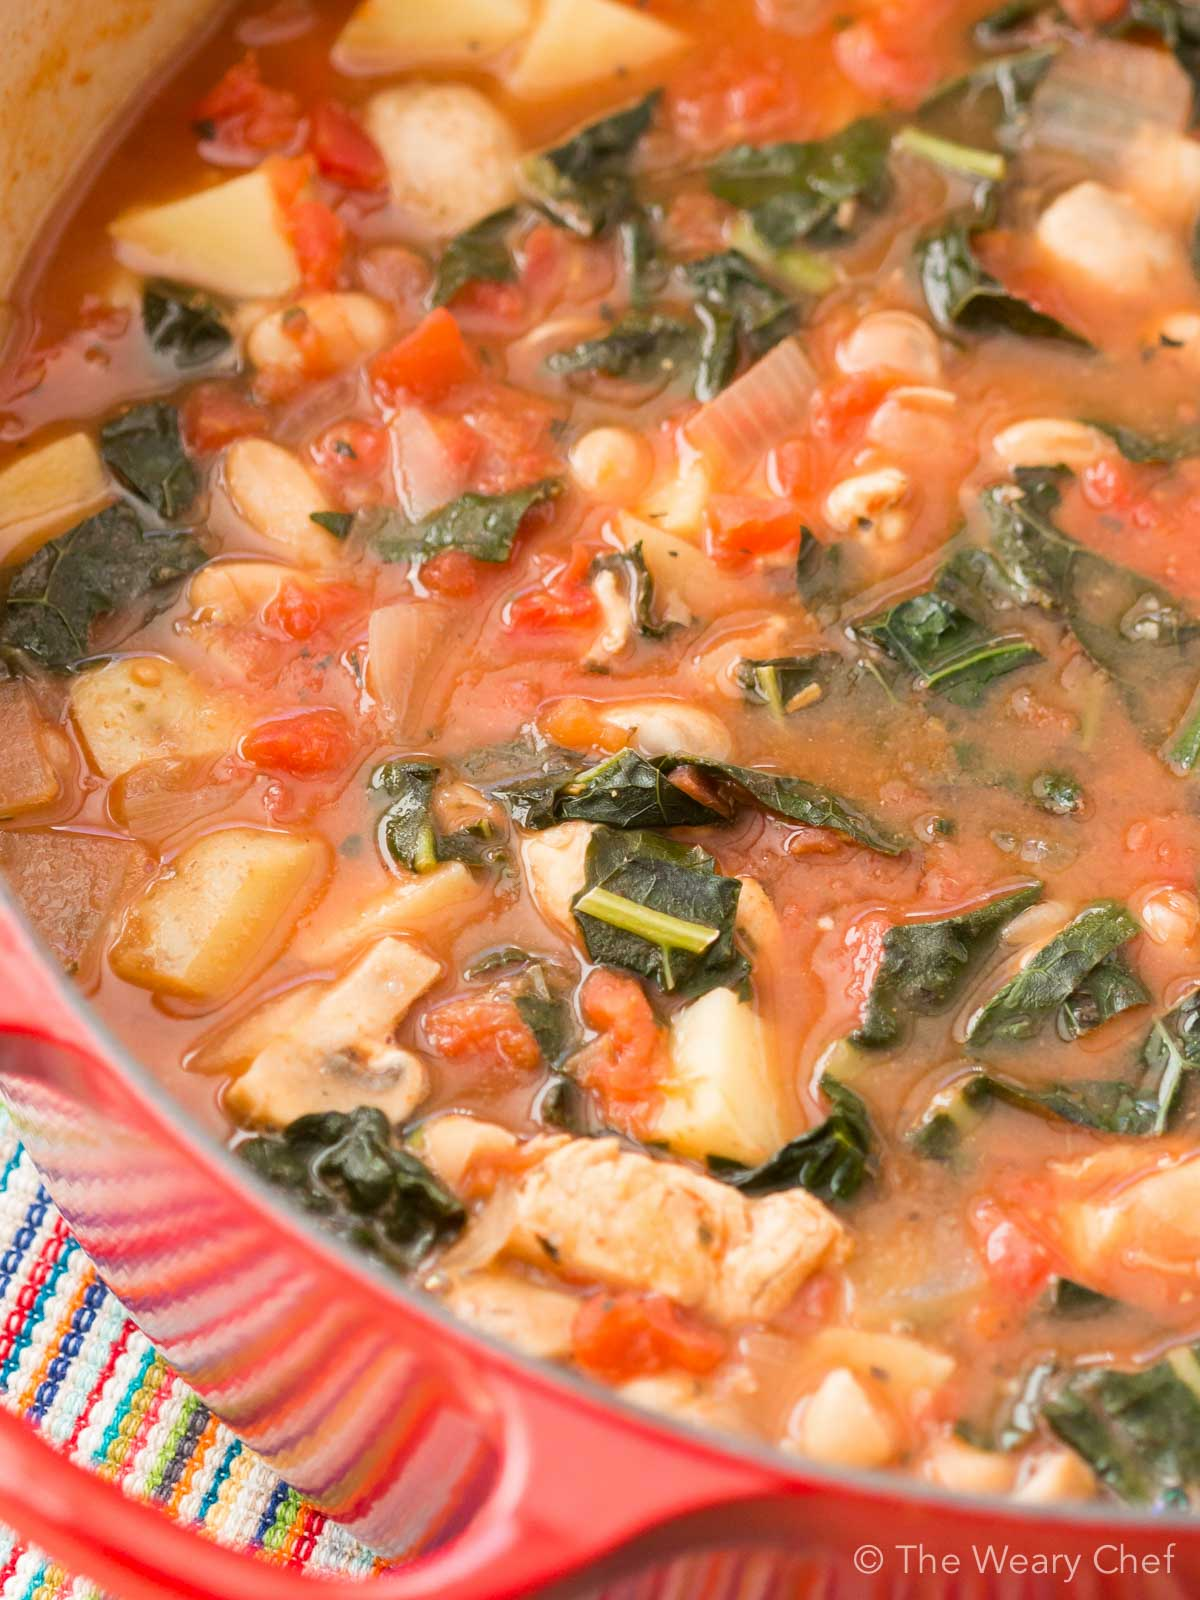 Chicken Potato Soup is just right for cold evenings. This hearty soup with Italian flavors is also loaded with white beans, dino kale, and tomatoes.